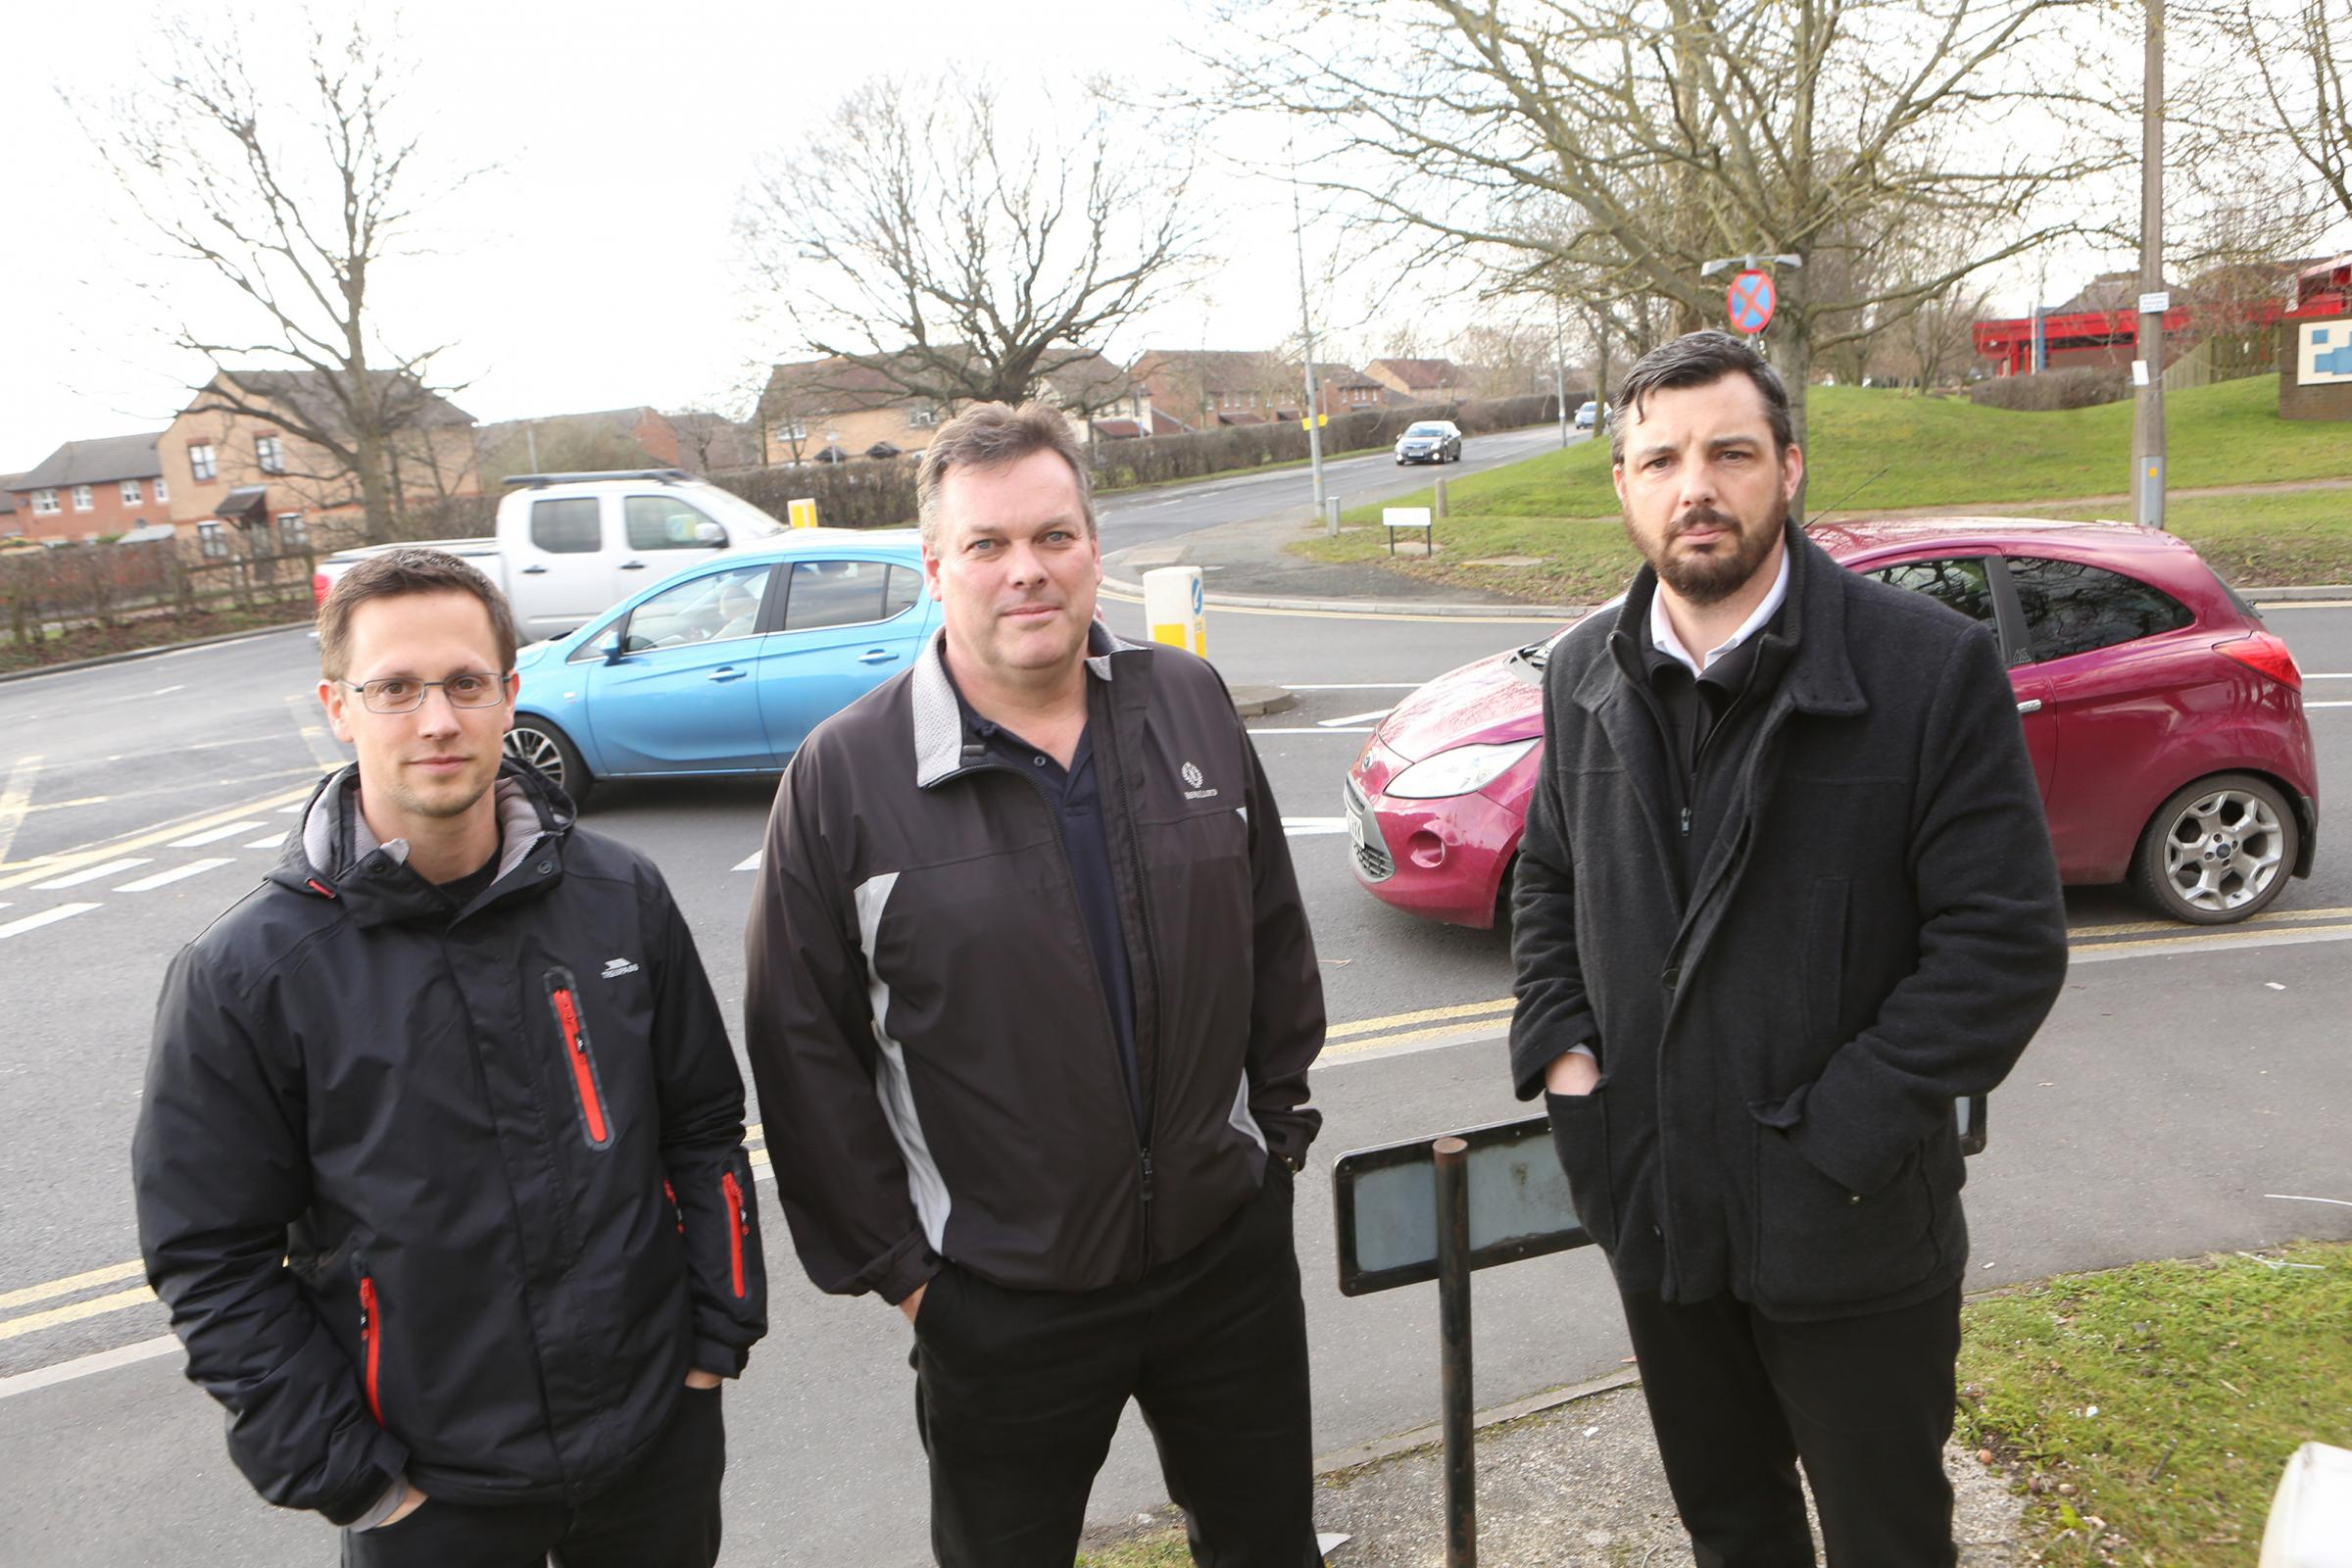 Will Johnson and James Hazelton from SES with Scott Gaffney, of BSS, at the junction of Wyncolls Road and Severalls Lane